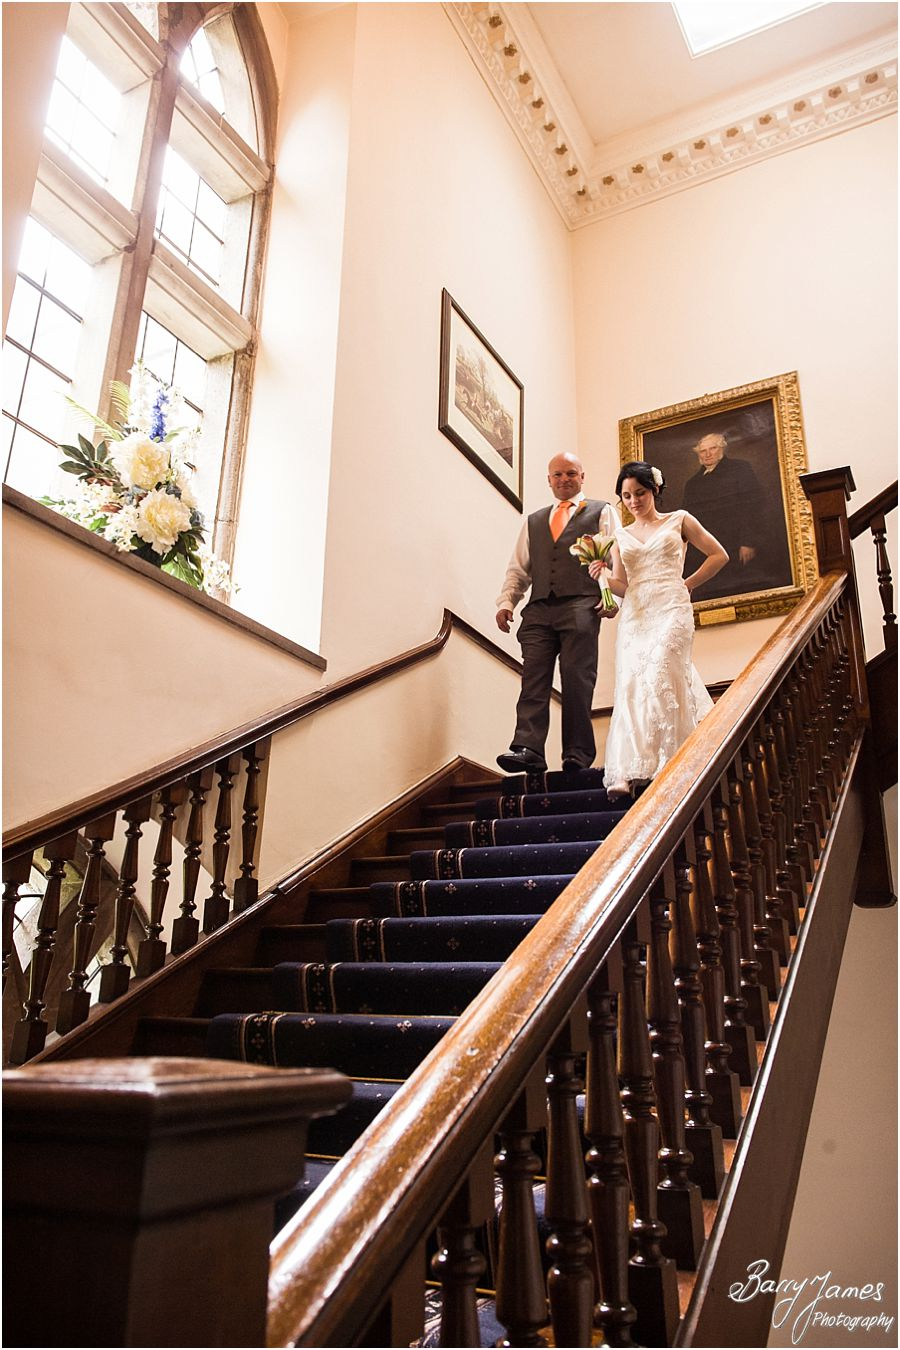 Capturing the bride walking down the stairs on the arm of her father at Clearwell Castle in Gloucestershire by Gloucester Wedding Photographer Barry James